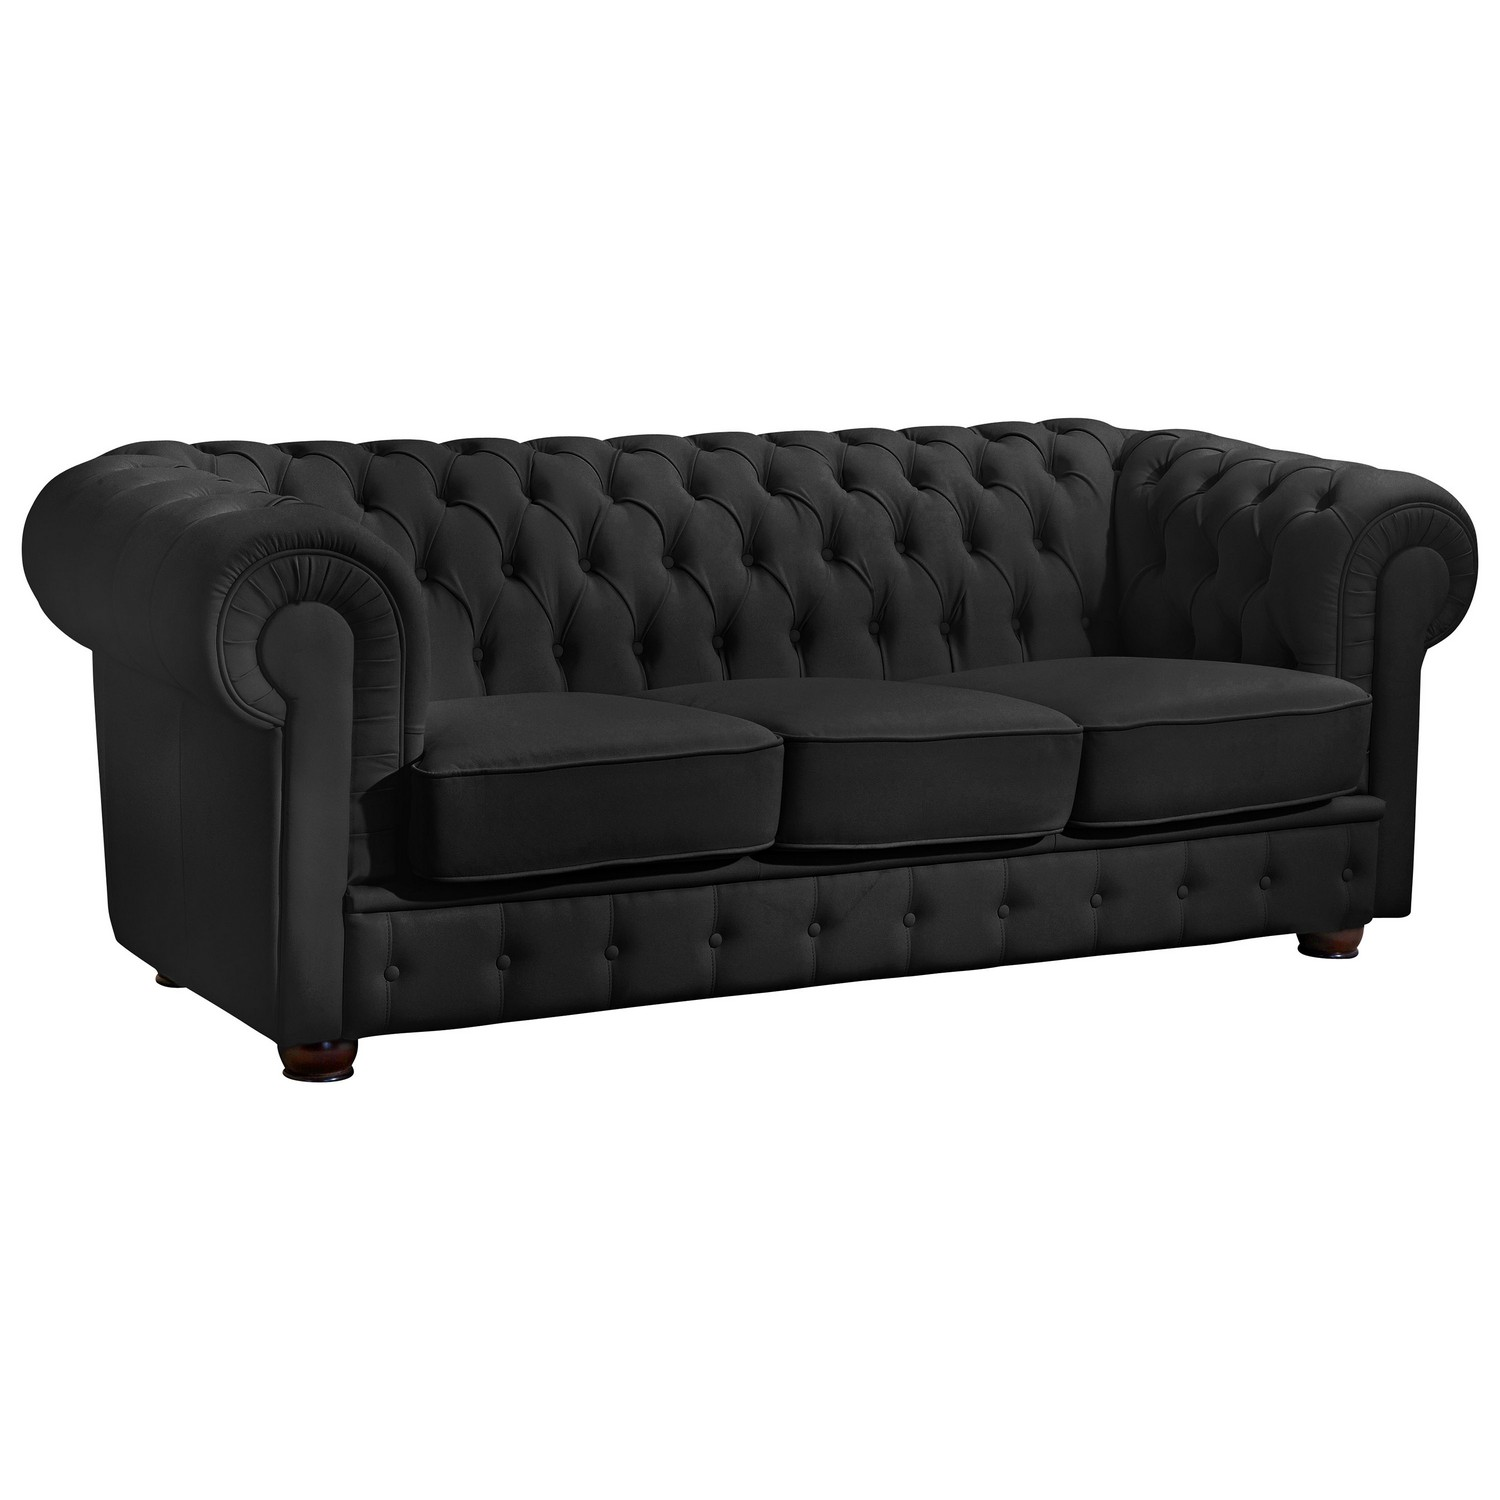 Sofa & Sessel - Bridgeport im Chesterfield Stil - 100% Leder